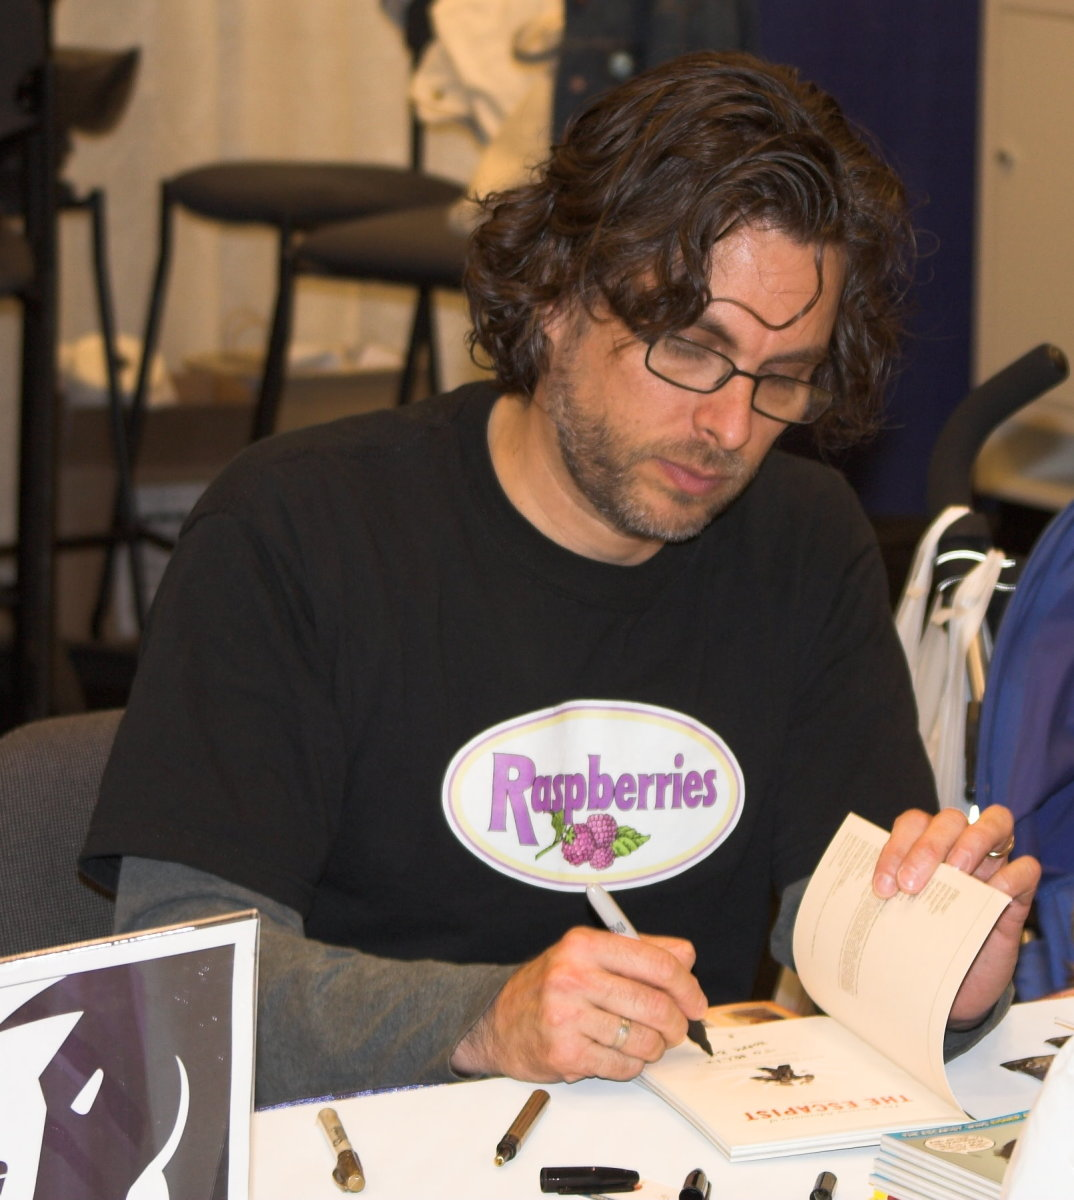 Michael Chabon at a book signing at WonderCon in 2006